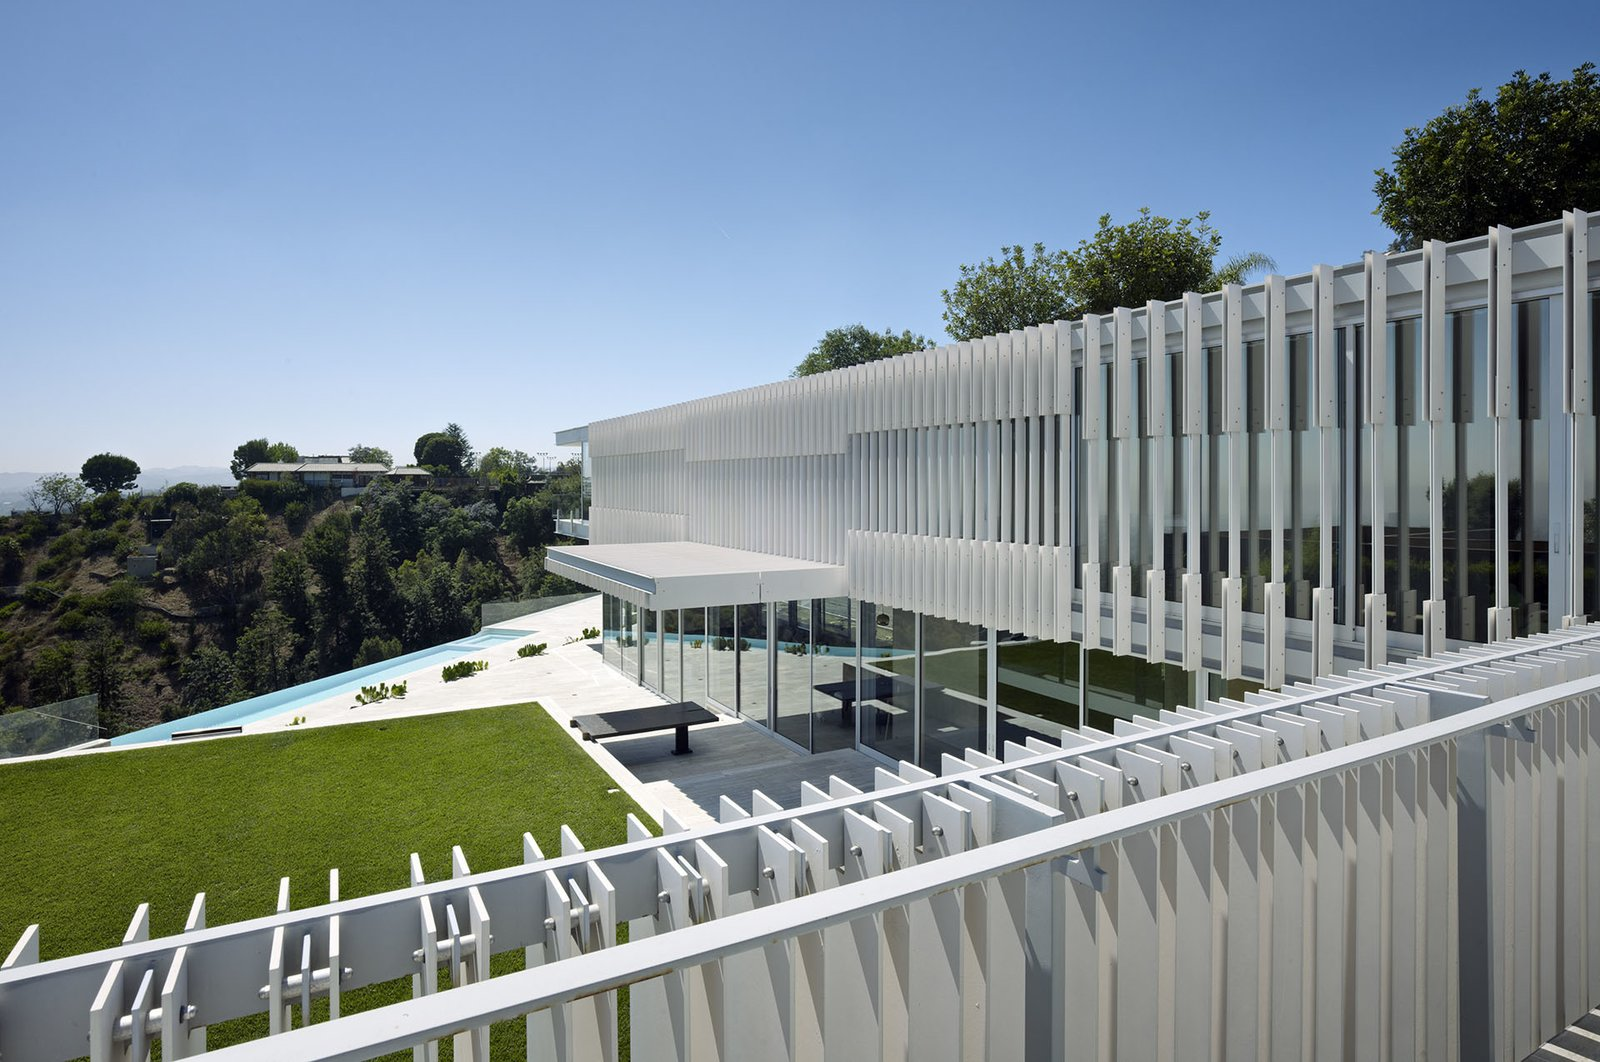 In plan, the structure is an L-shape, embracing the view across its angled infinity pool.